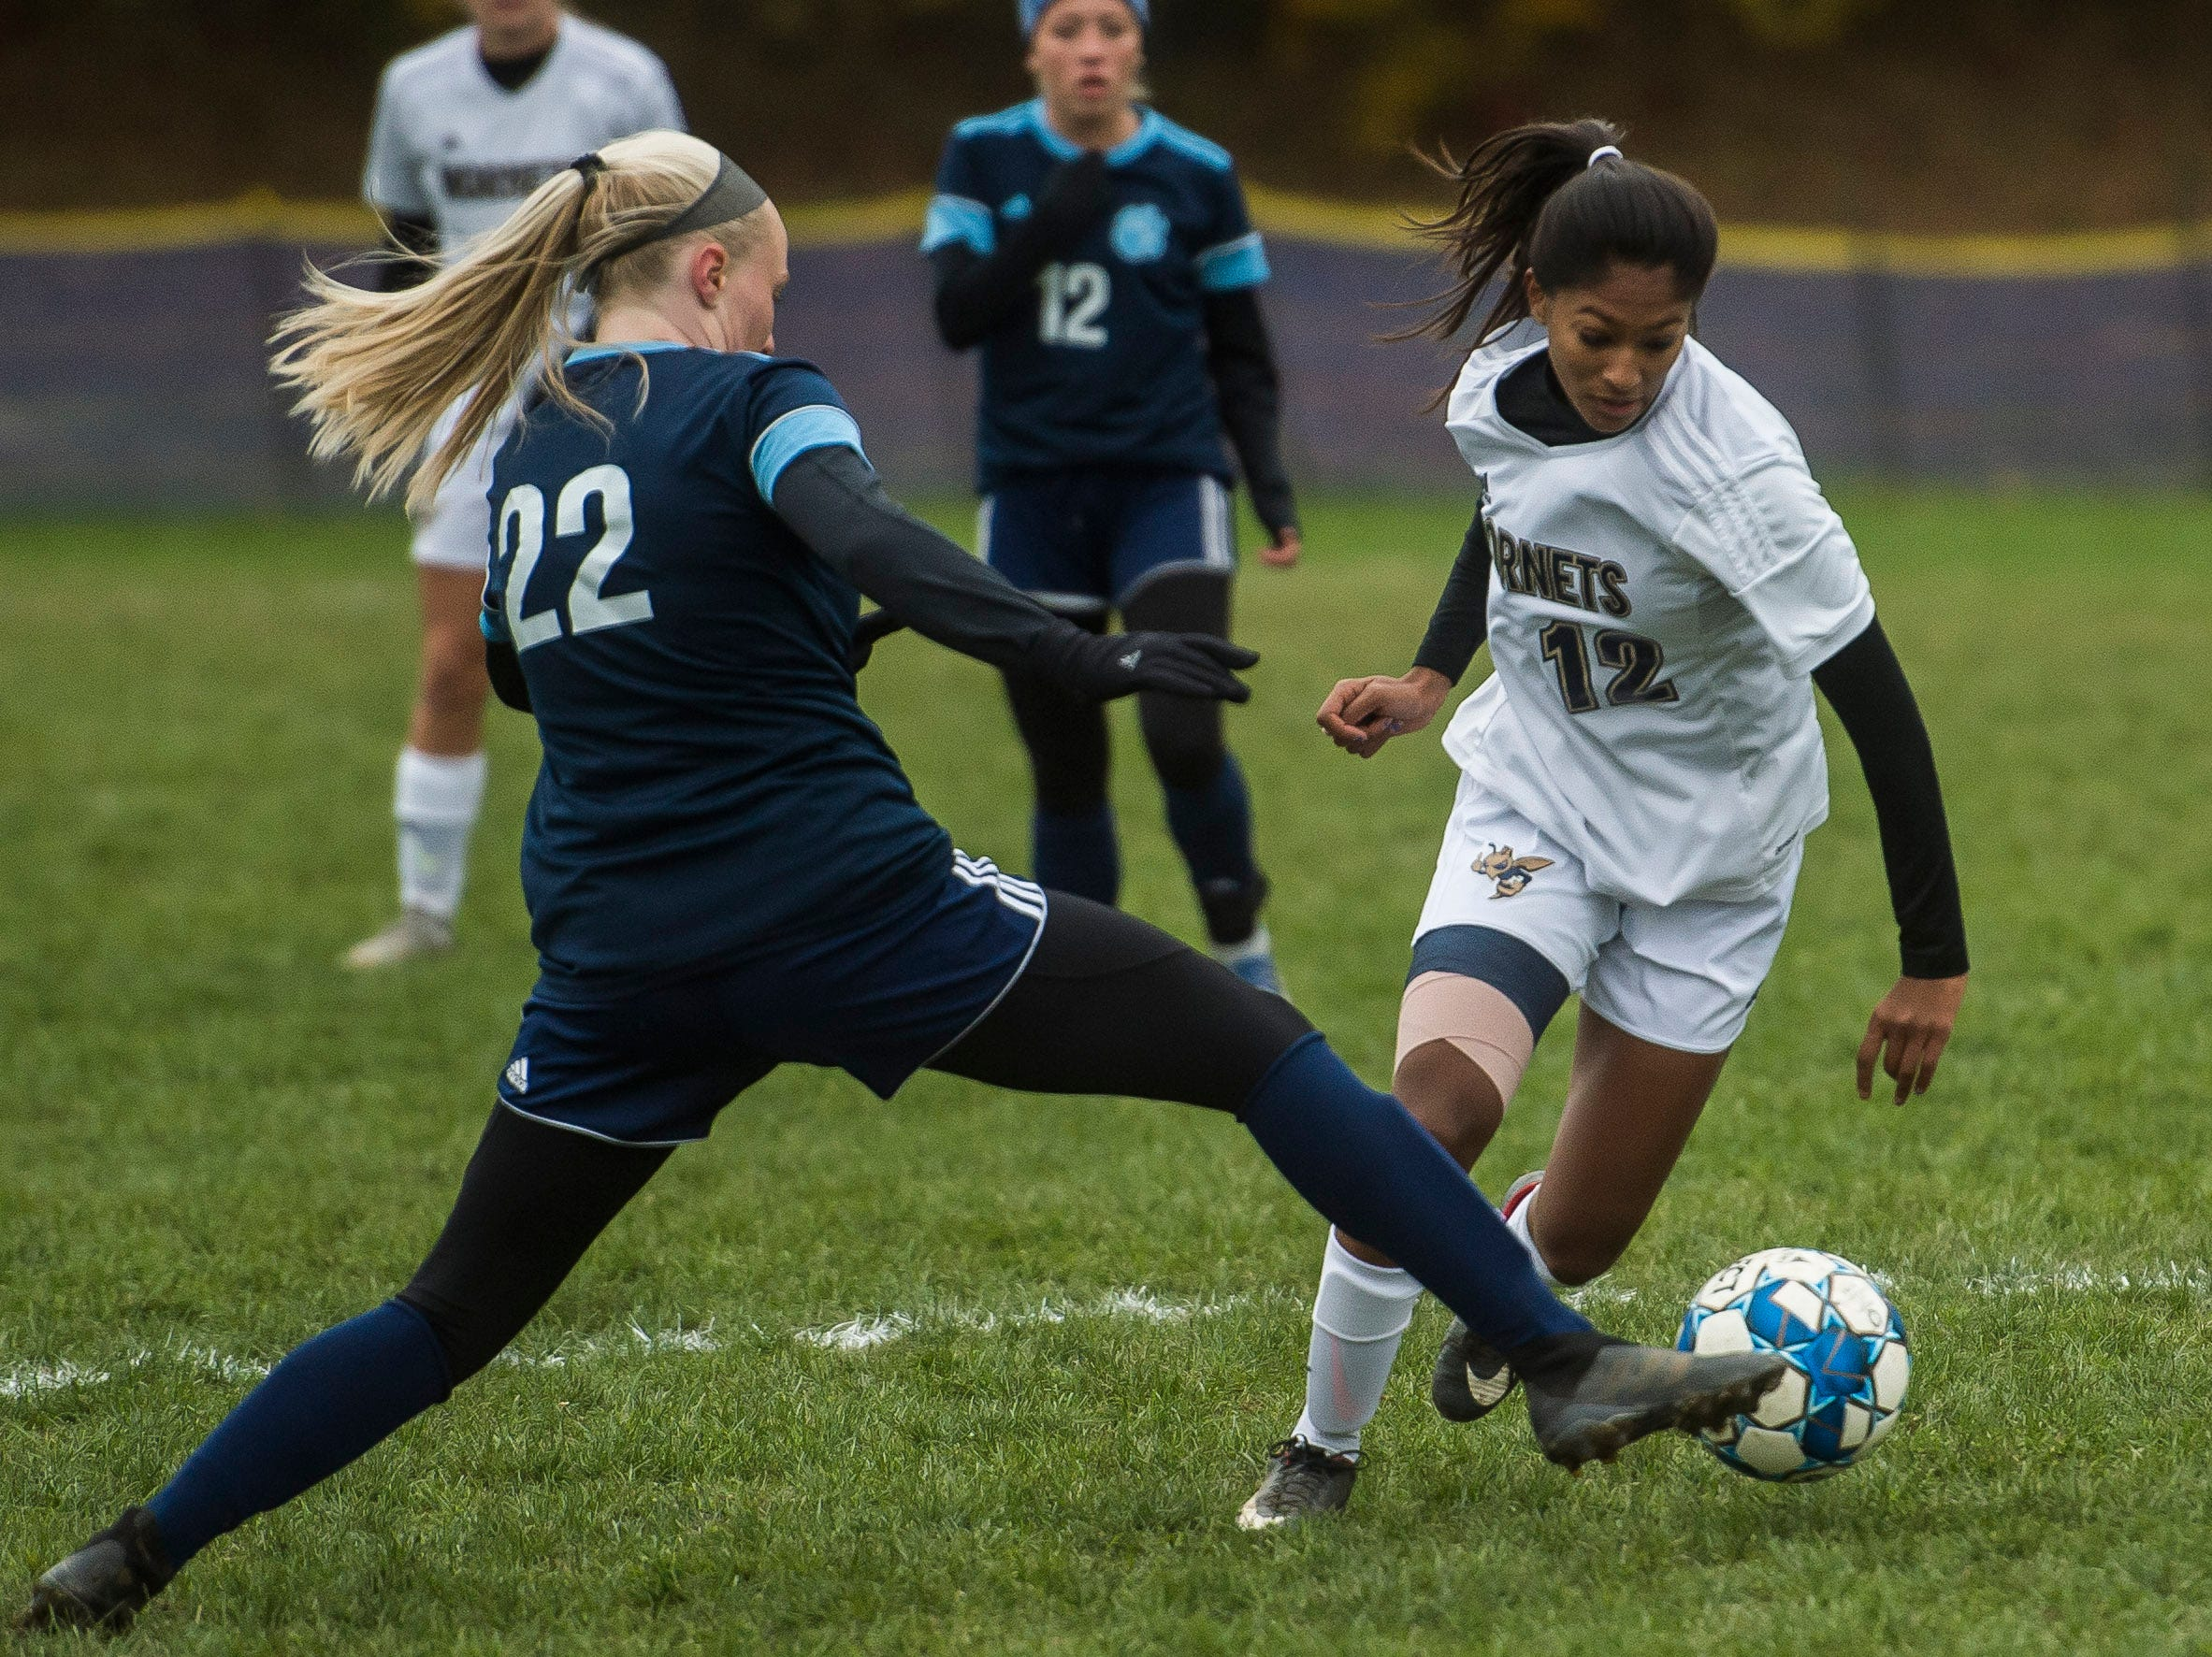 MMU #22 Willa Clark and Essex #12 Souma Mitra battle for the ball during their quarter-final game in Jericho on Saturday, Oct. 27, 2018, that went into double overtime and shootout. Essex took the penalty kick contest to win, 4-1.